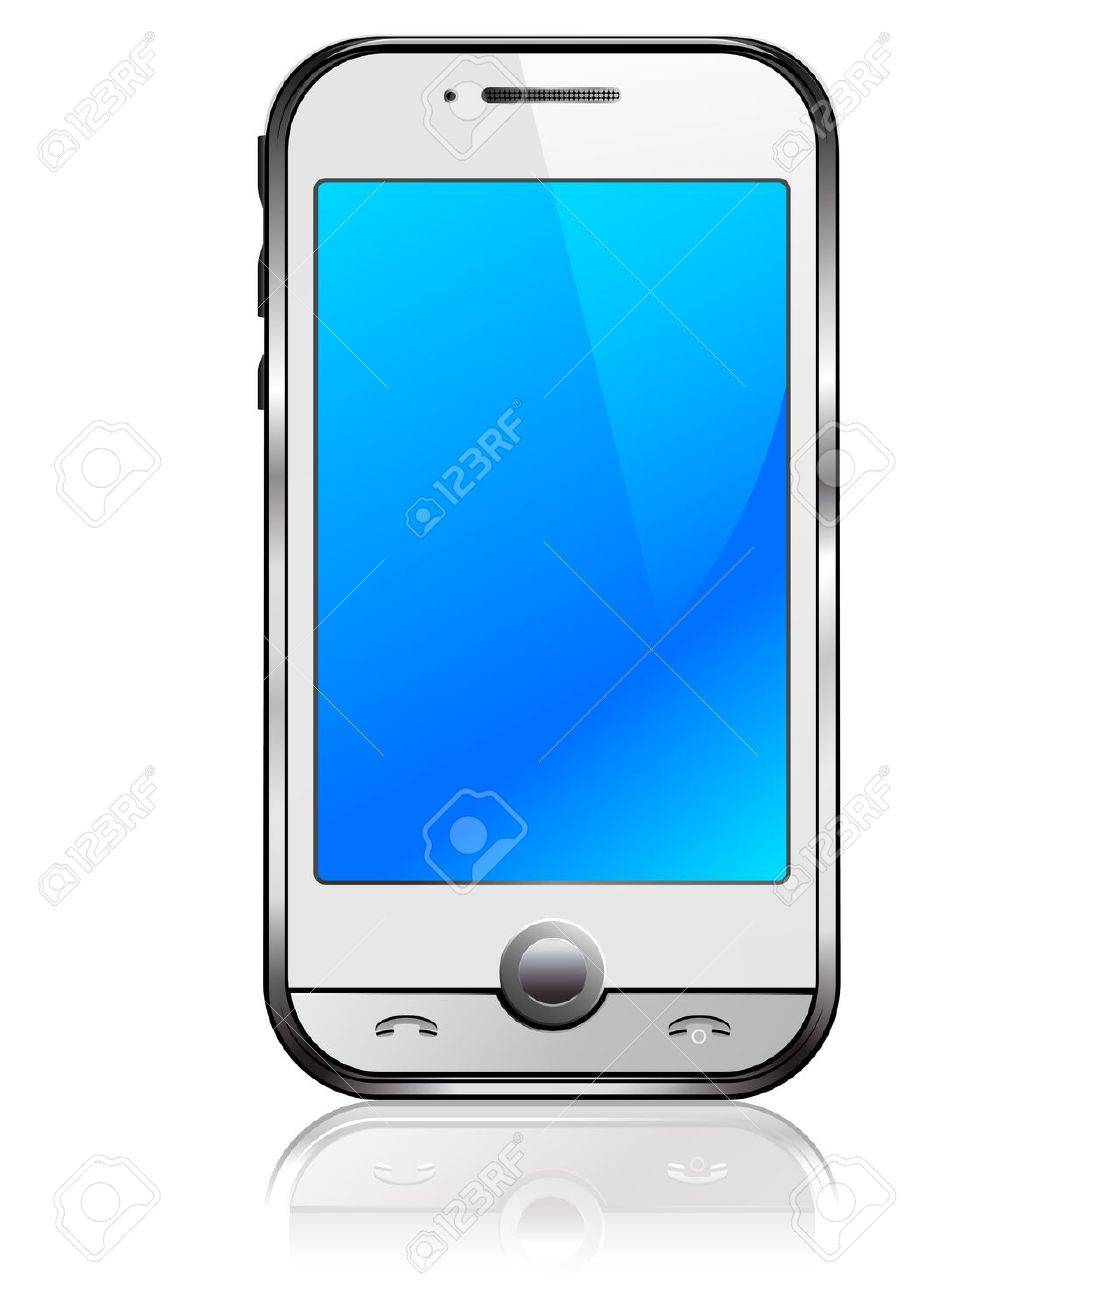 Stylish new Cell Smart Mobile phone on a white background Stock Vector - 9333095